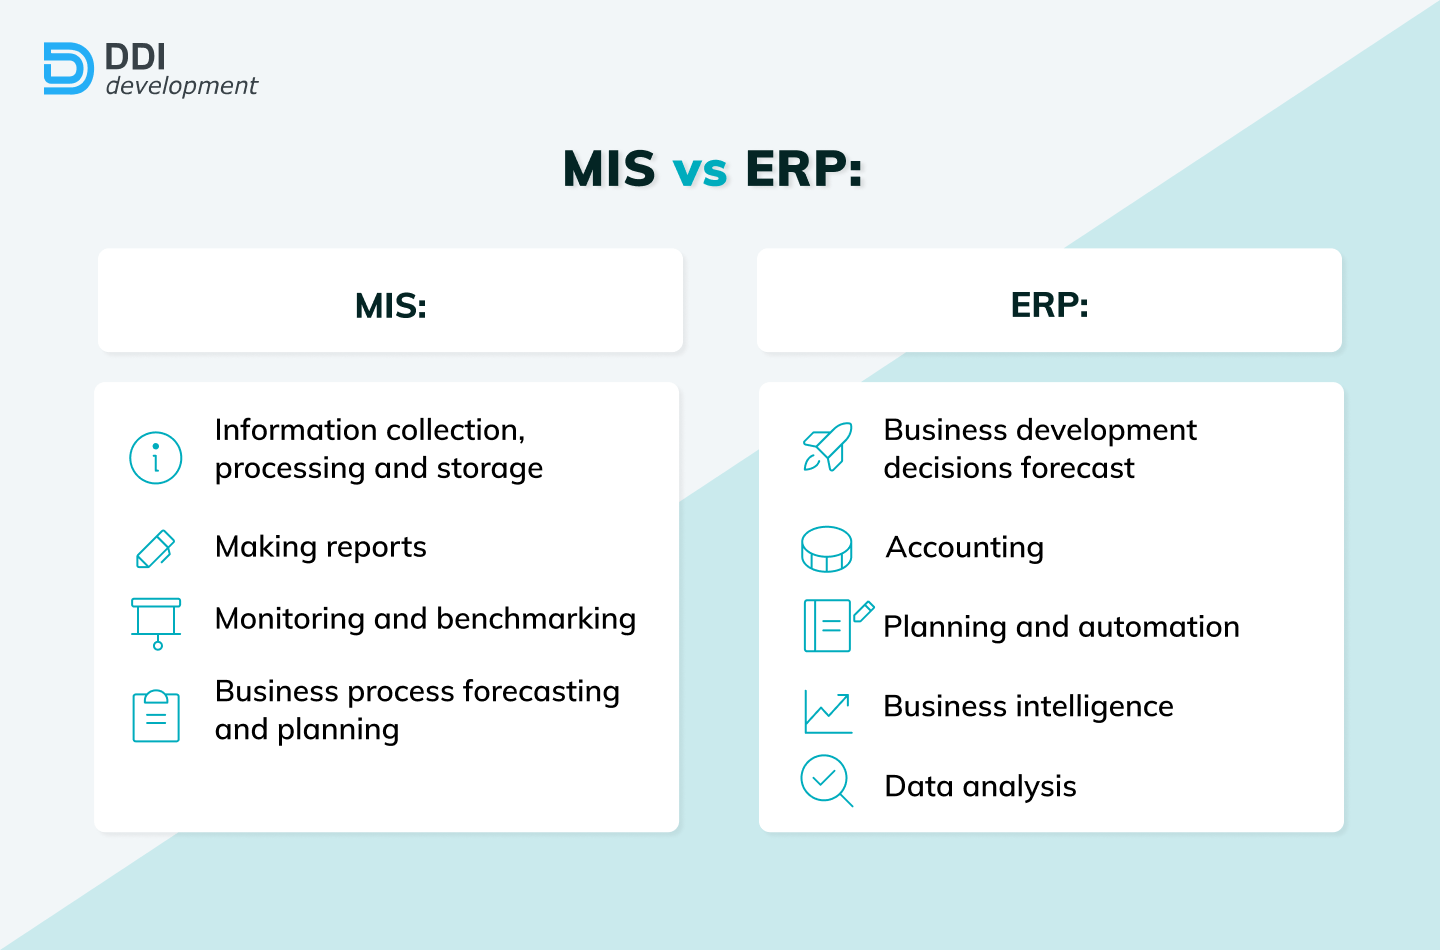 difference between MIS and ERP